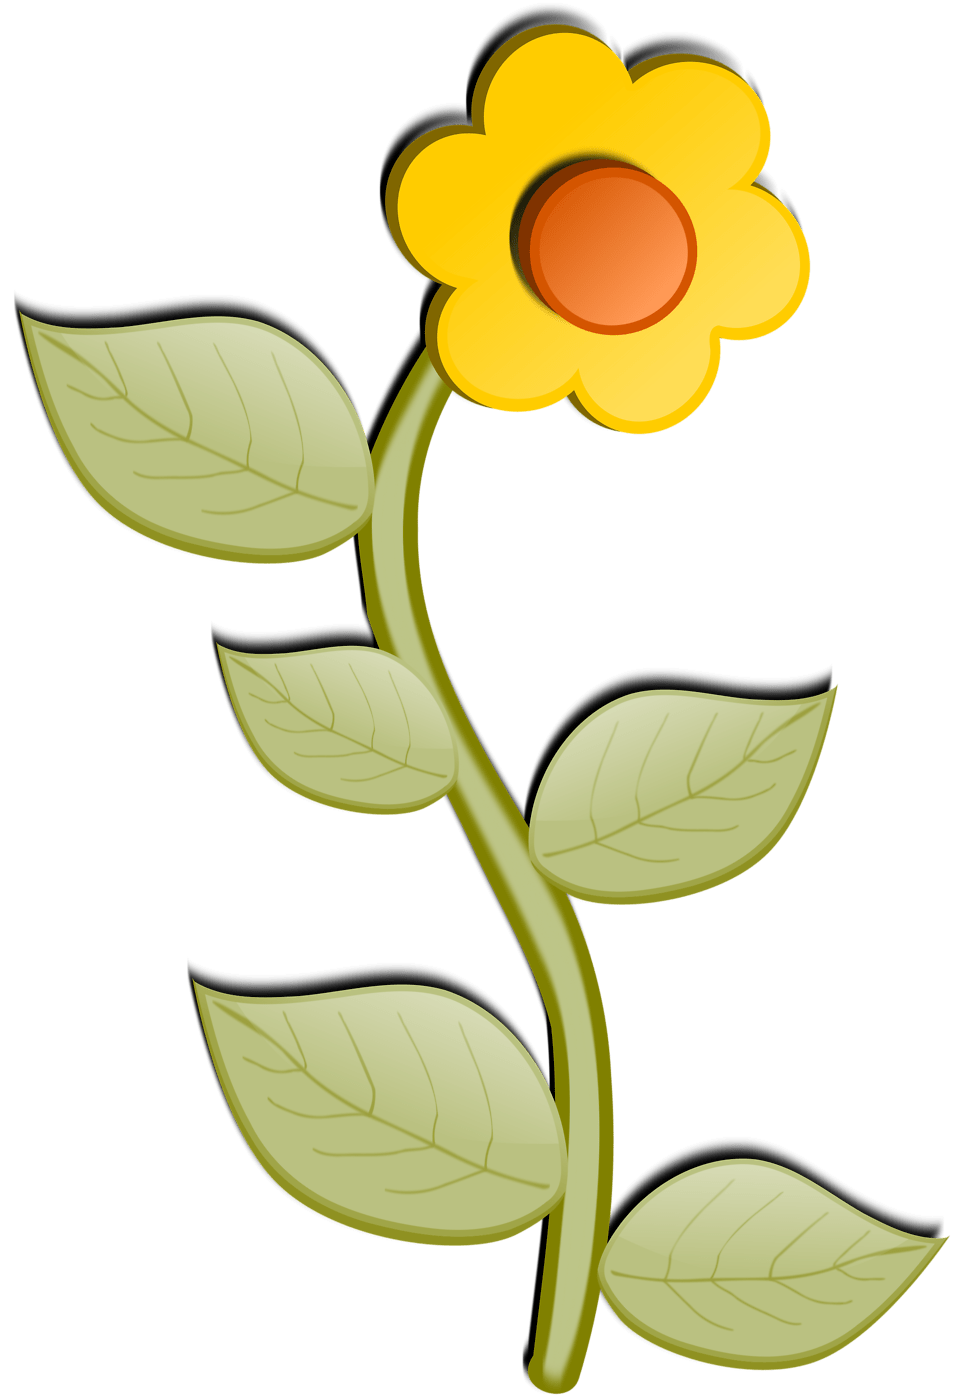 Flower   Free Stock Photo   Illustration of a yellow ... (958 x 1397 Pixel)